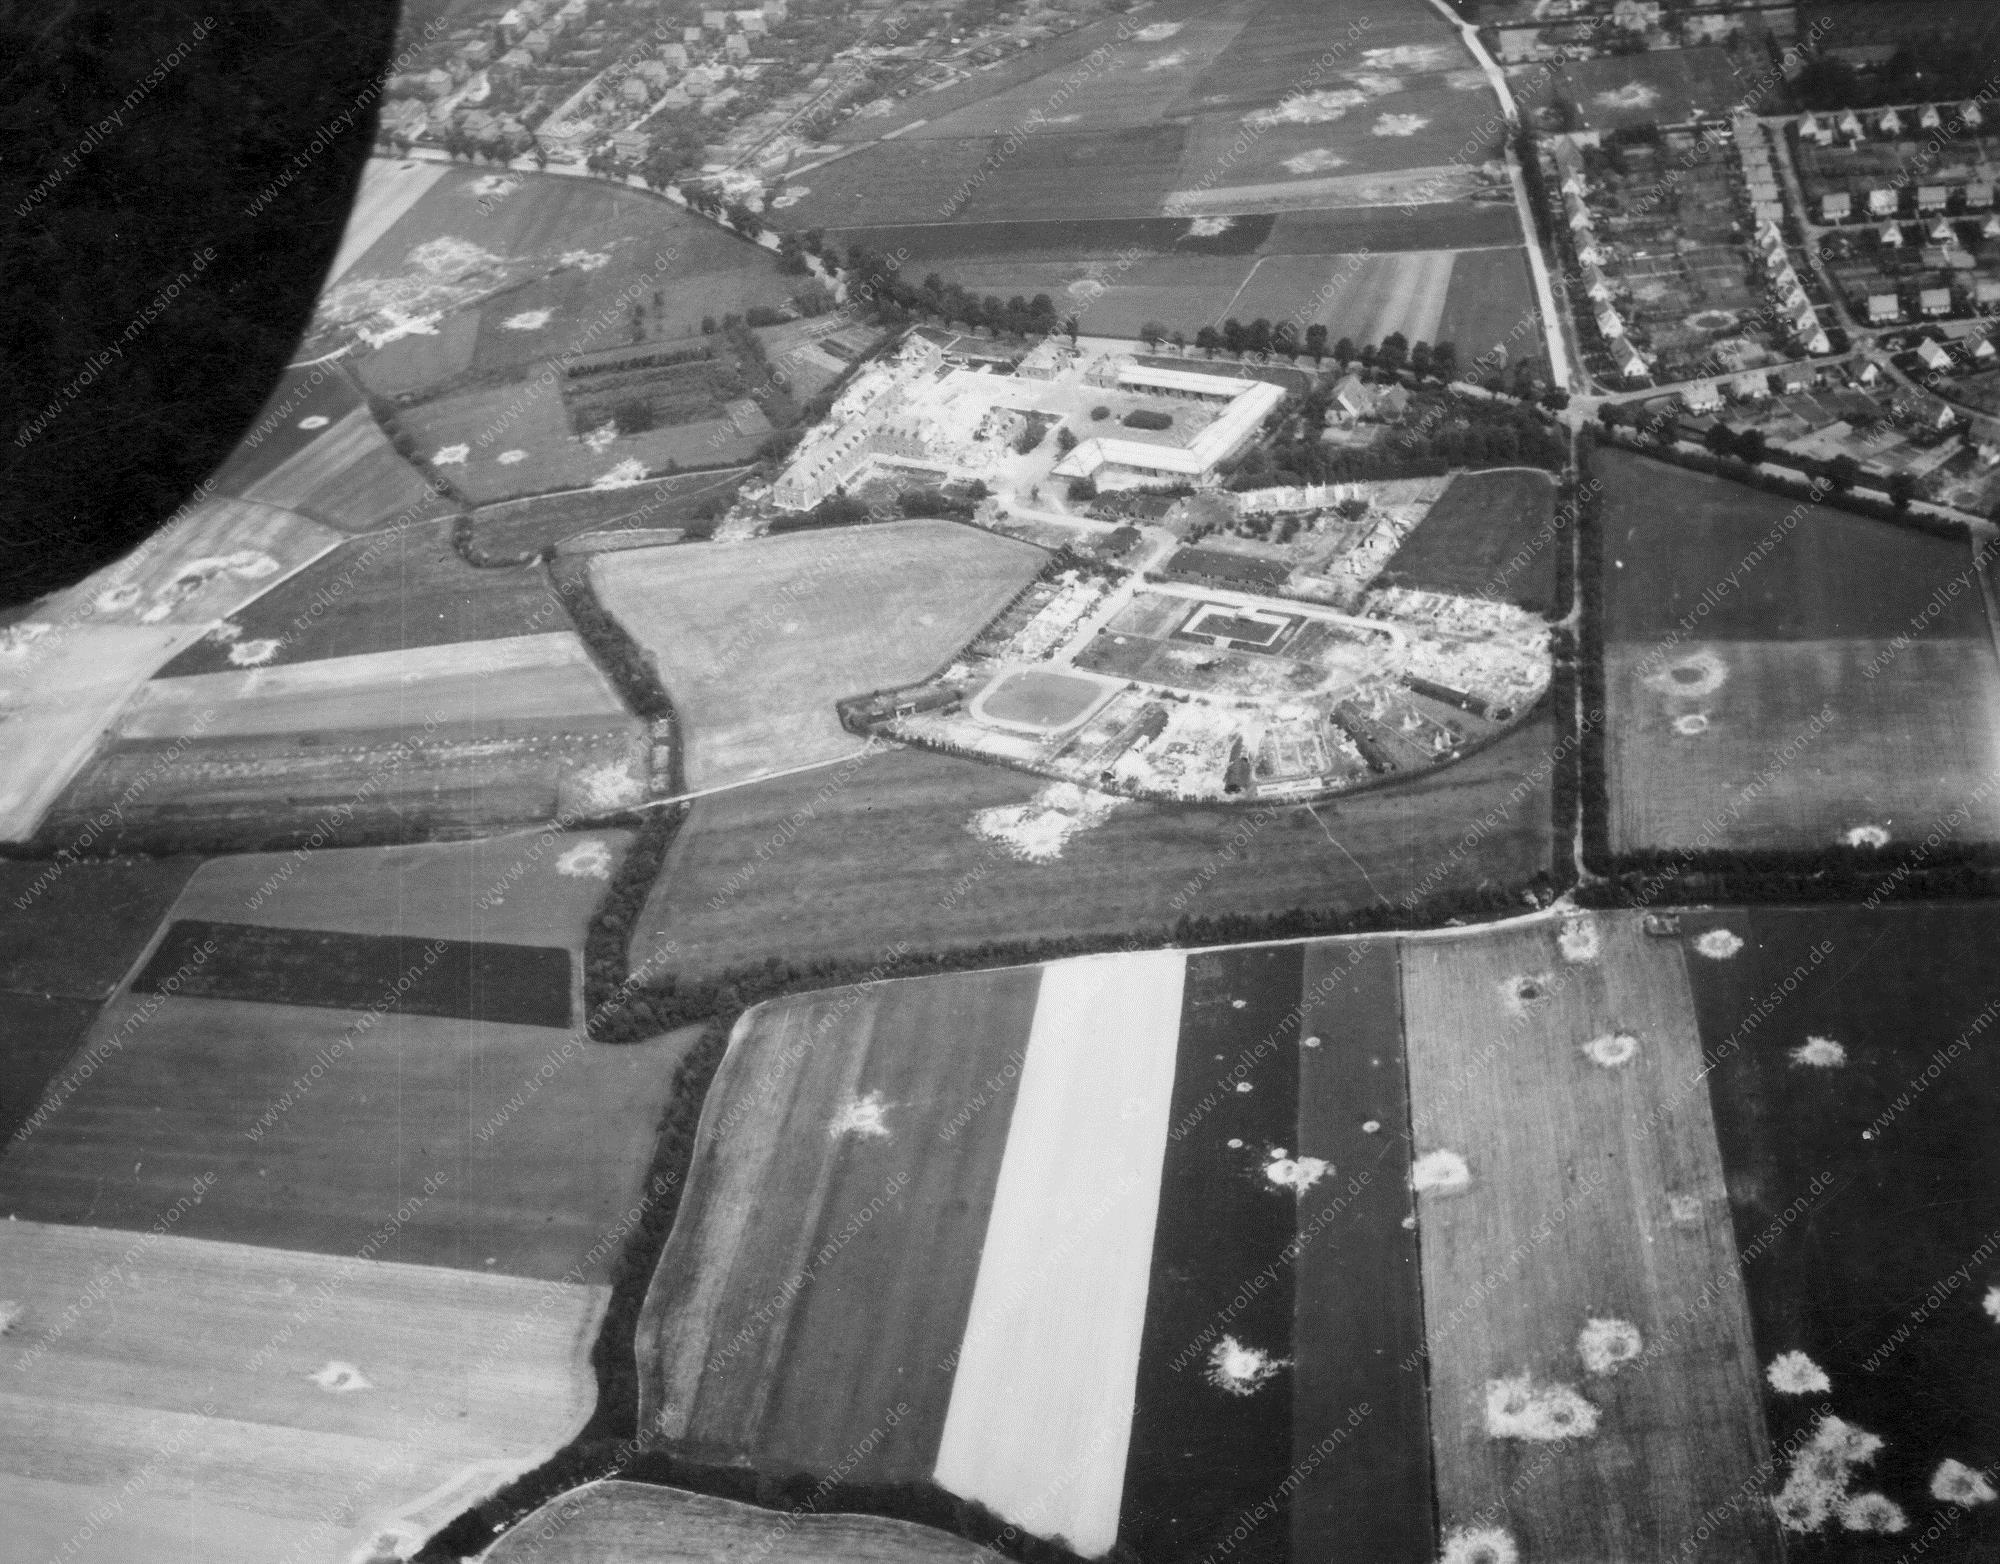 Muenster from above: Aerial view after Allied air raids in World War II